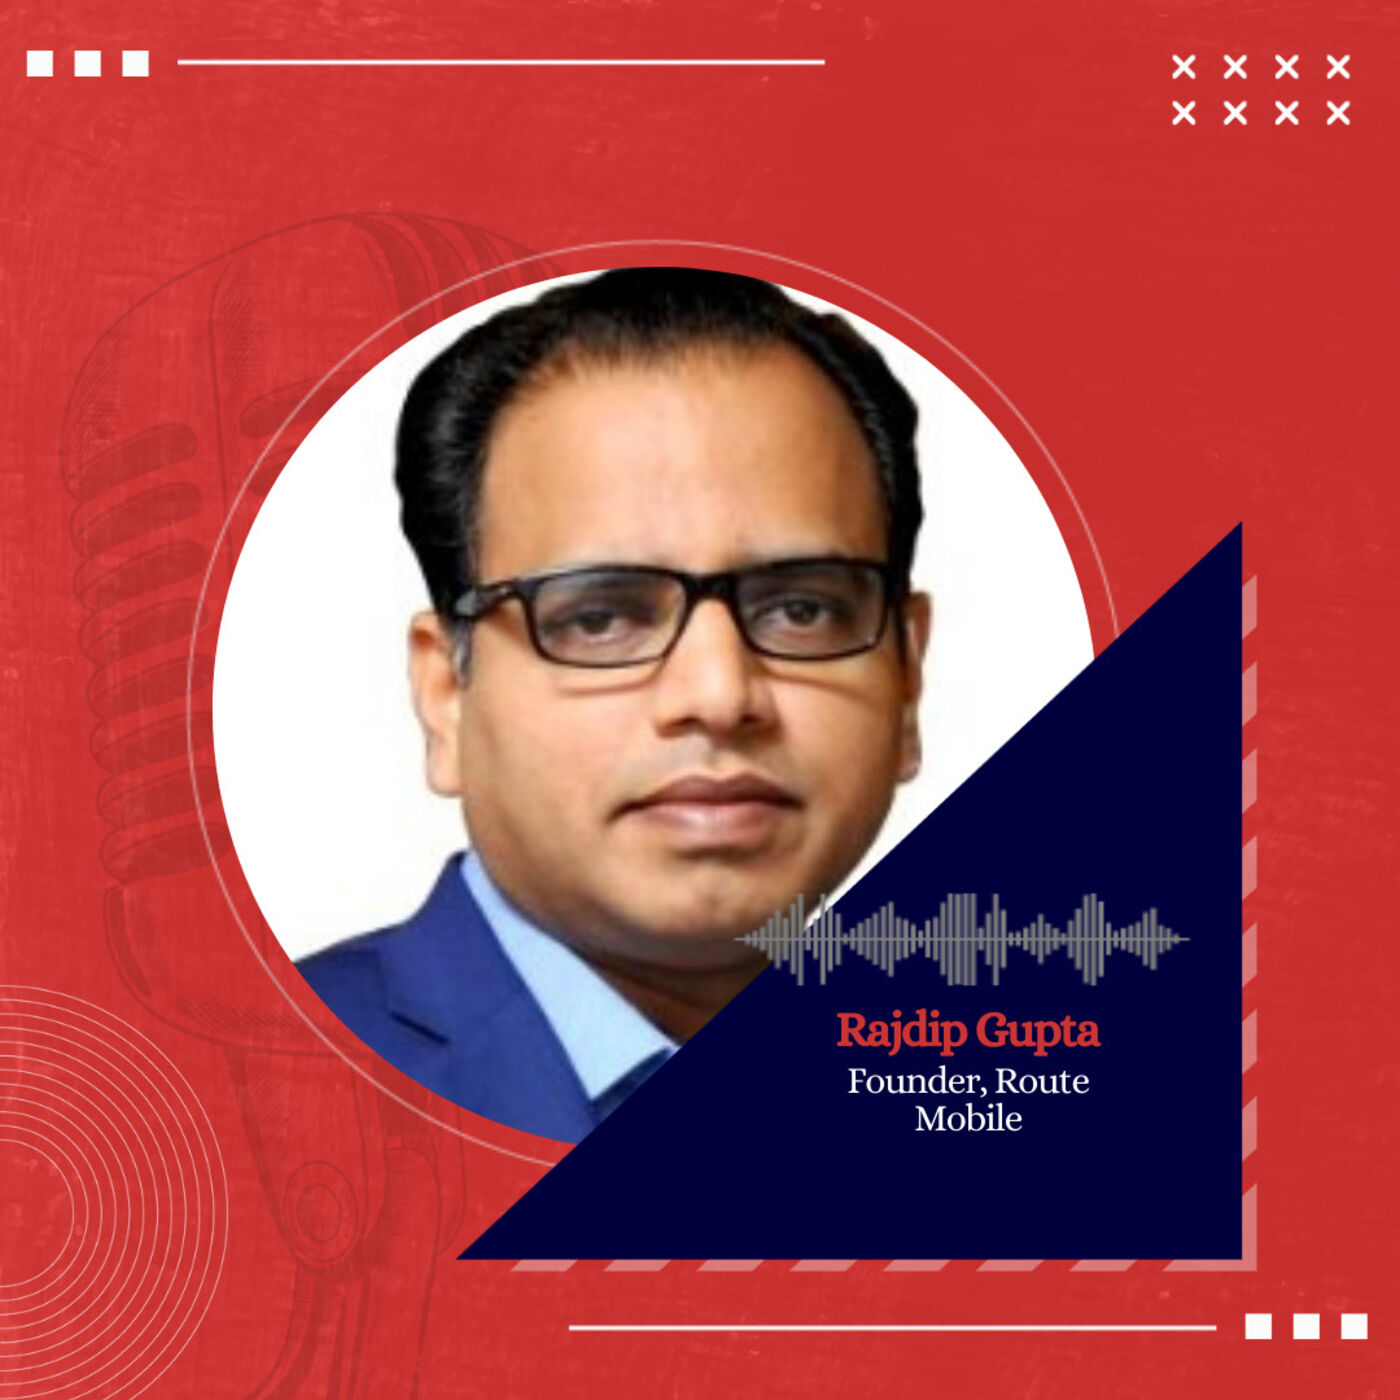 From Bootstrap to IPO ft. Rajdip Gupta, Founder, Route Mobile